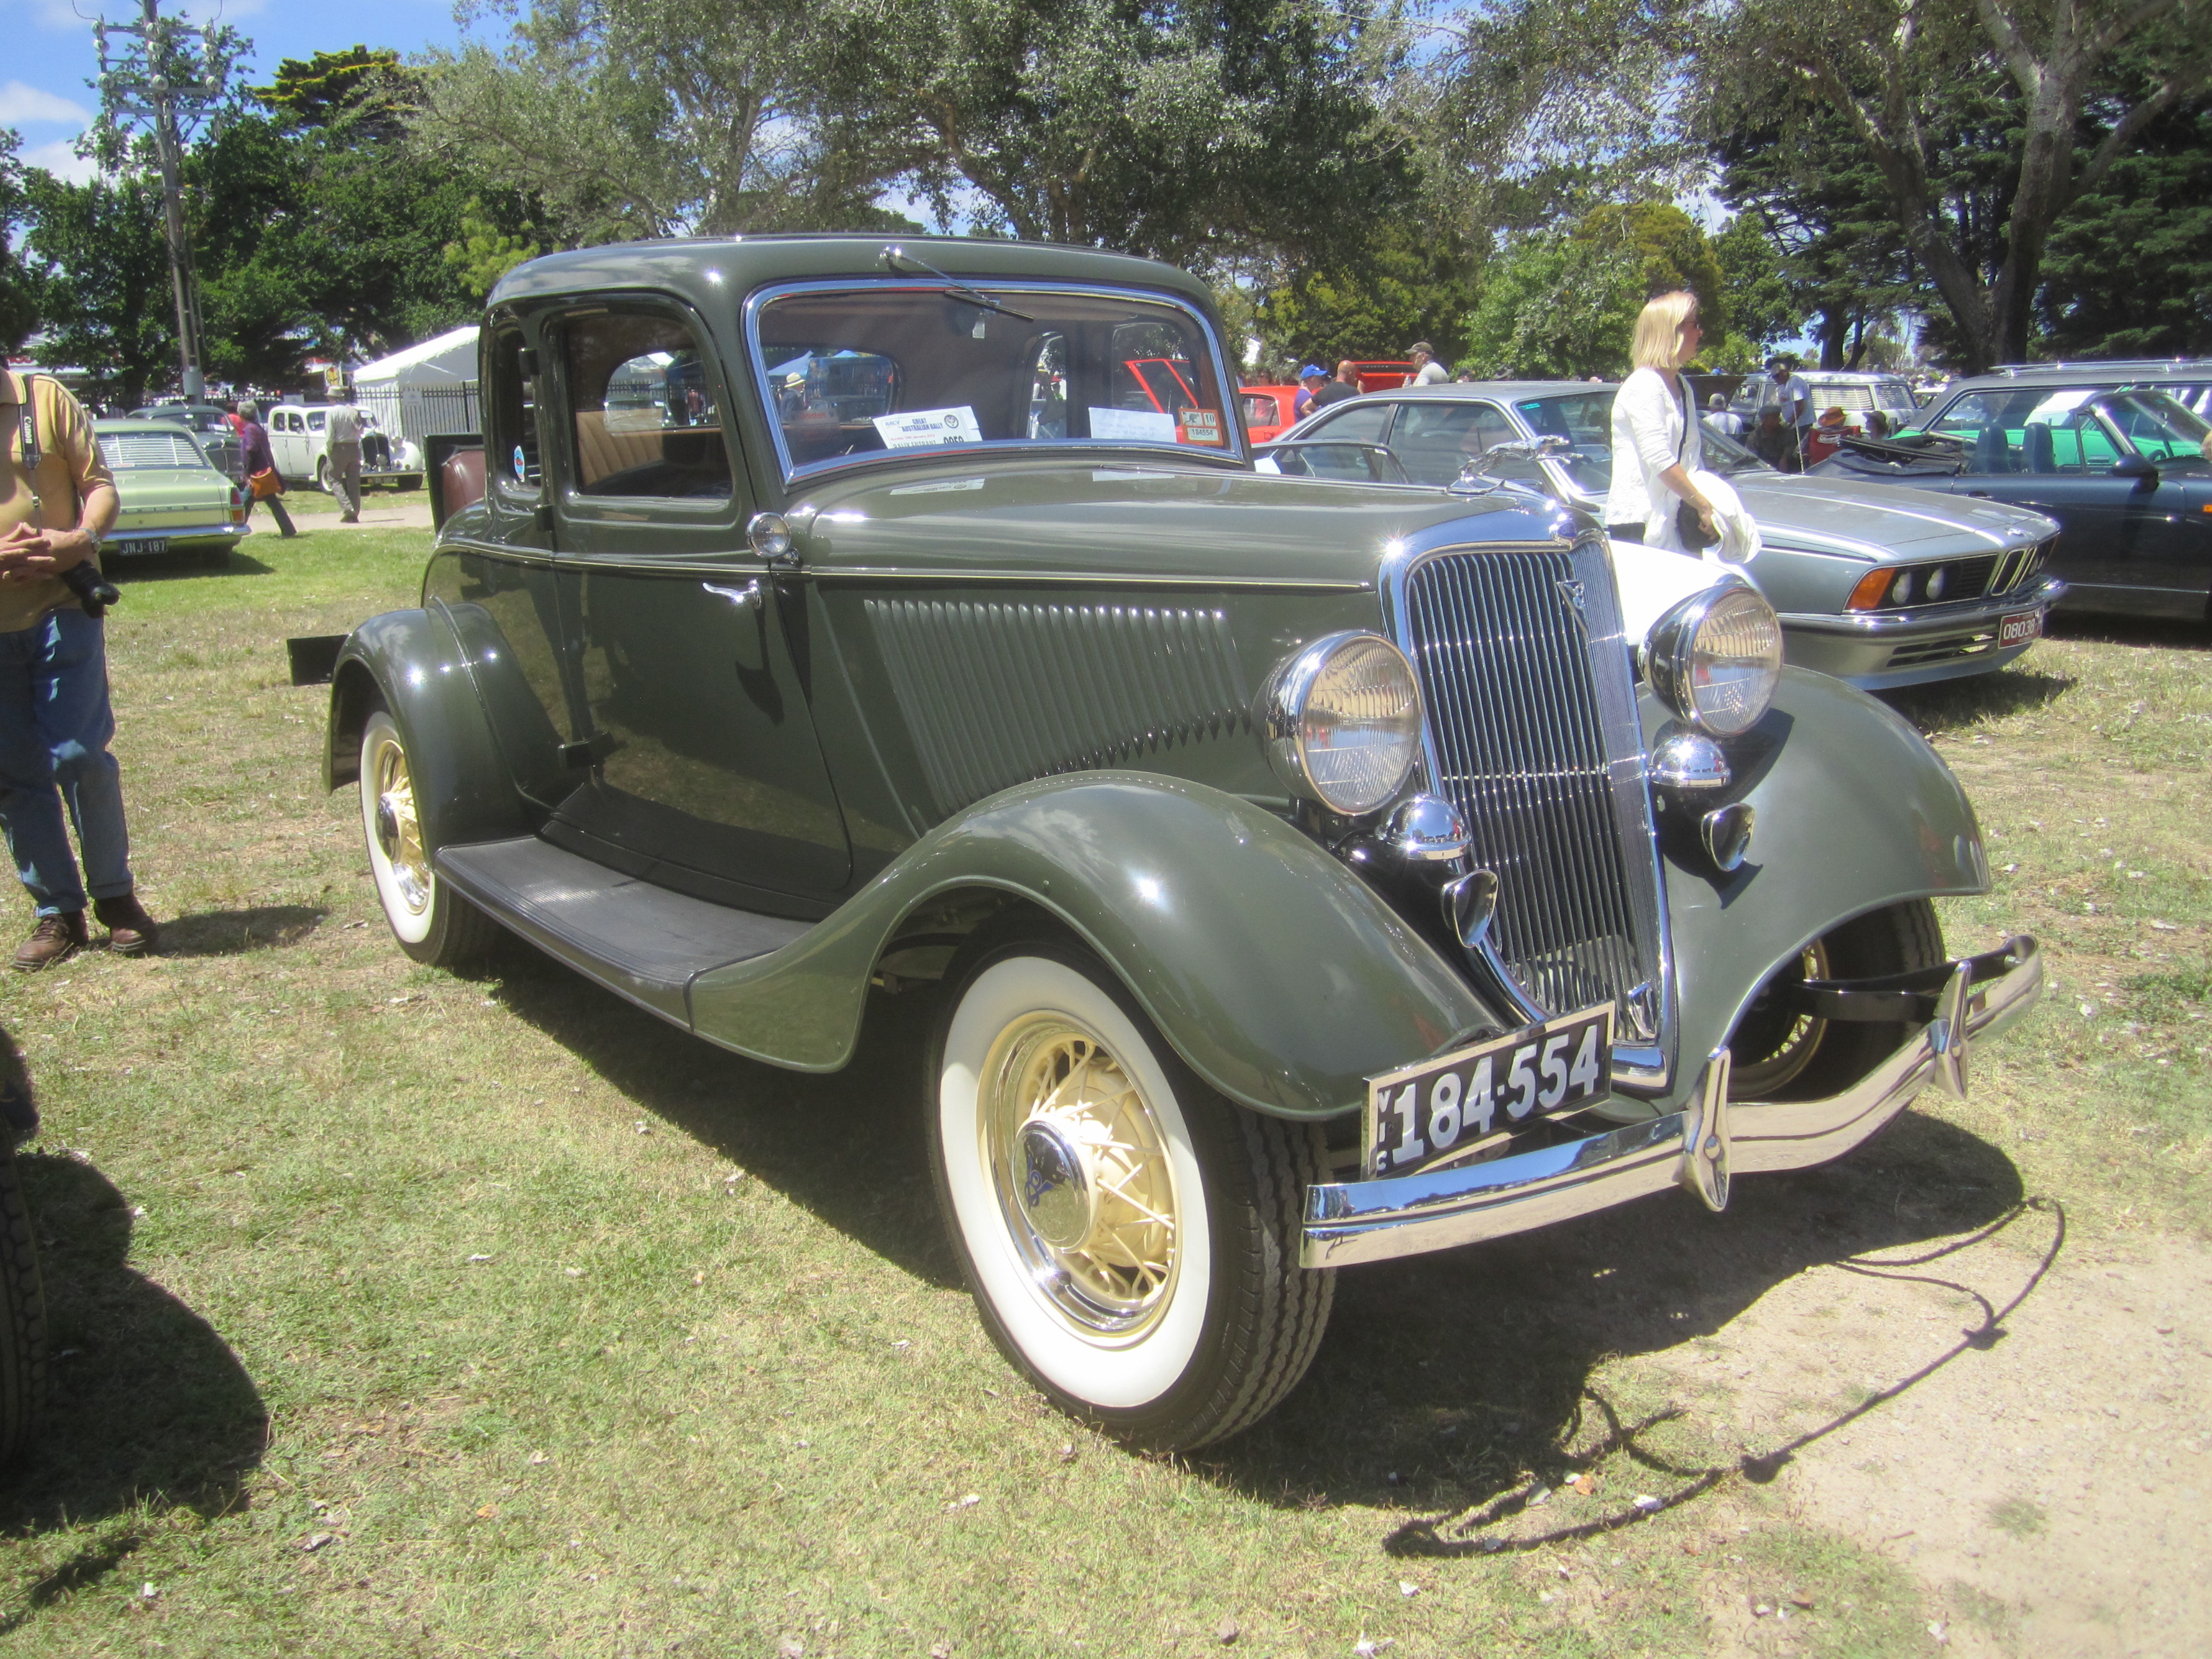 File:1934 Ford Model 40A 5 window Coupe.jpg - Wikimedia ...